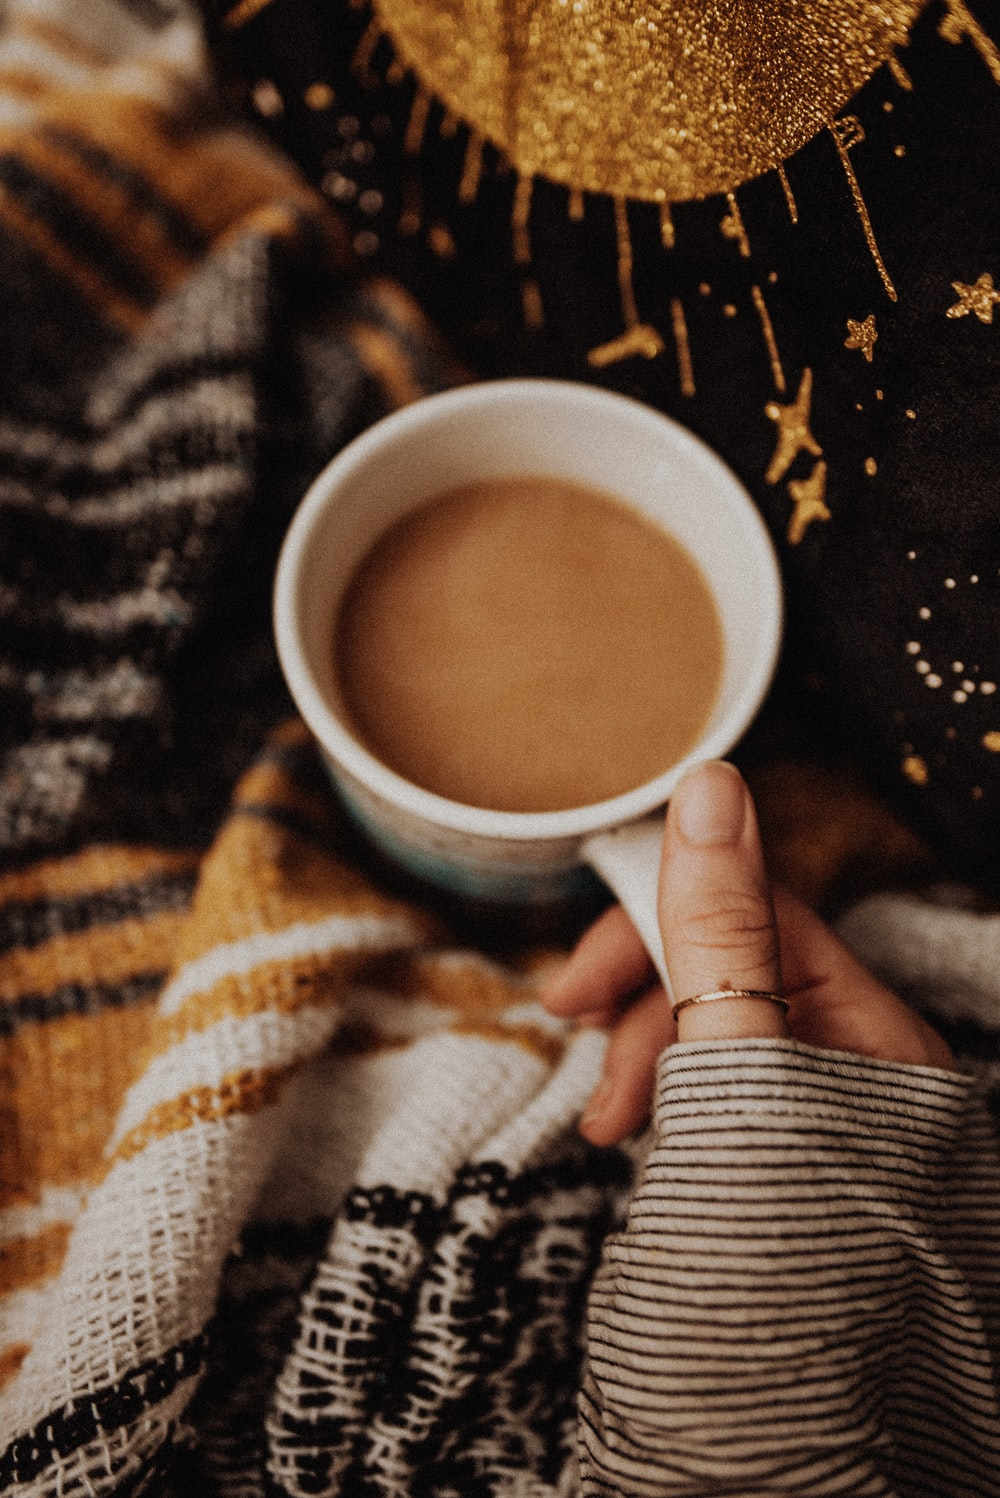 Coffee Aesthetic Pictures Download Free Images On Unsplash